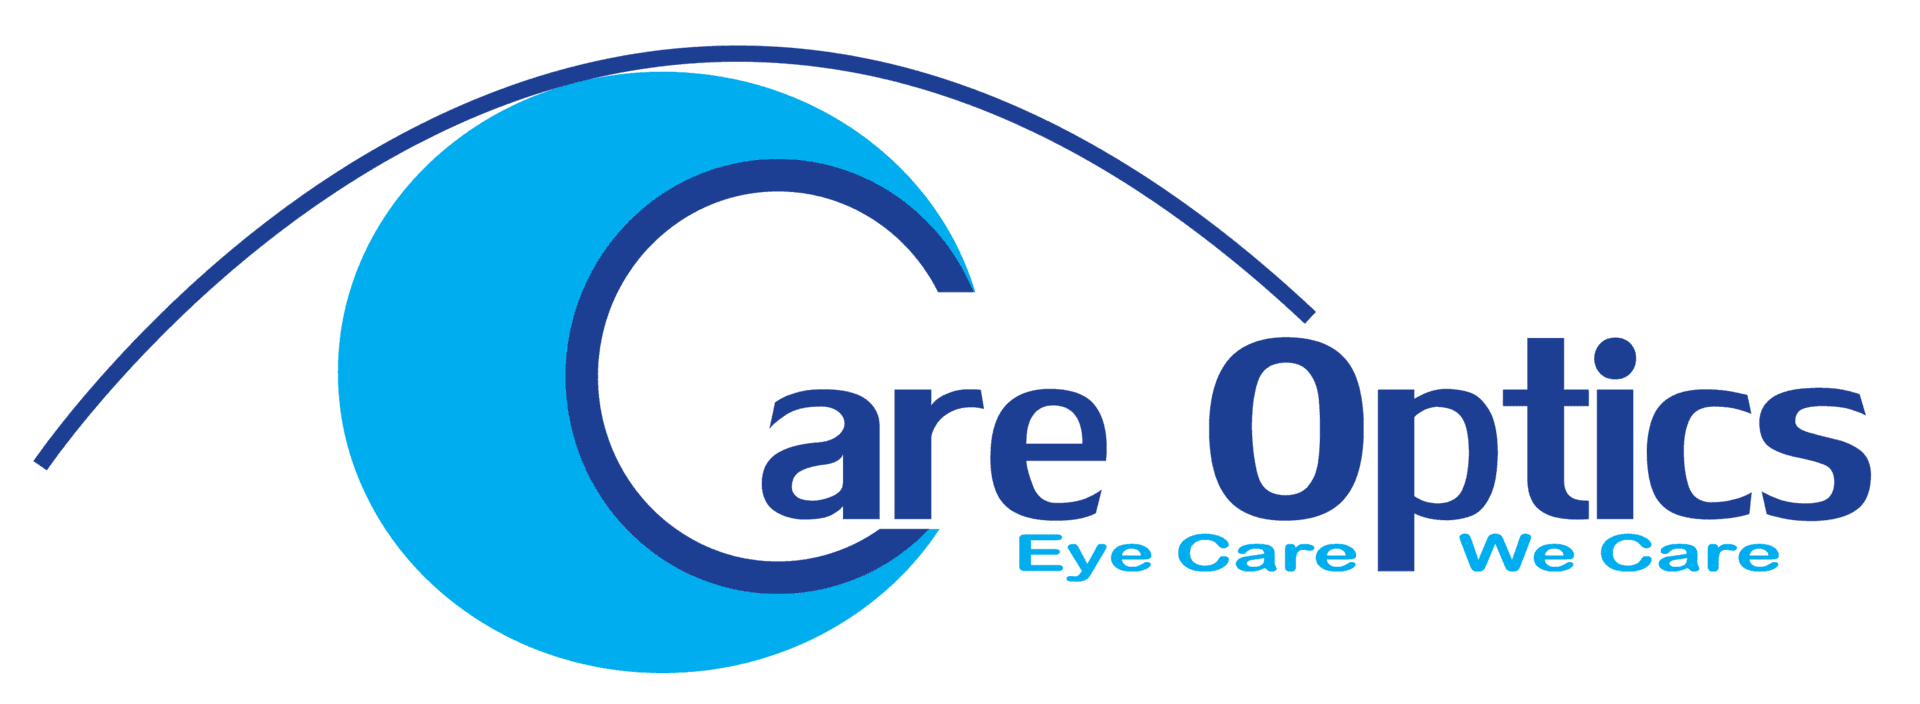 Care Optics logo